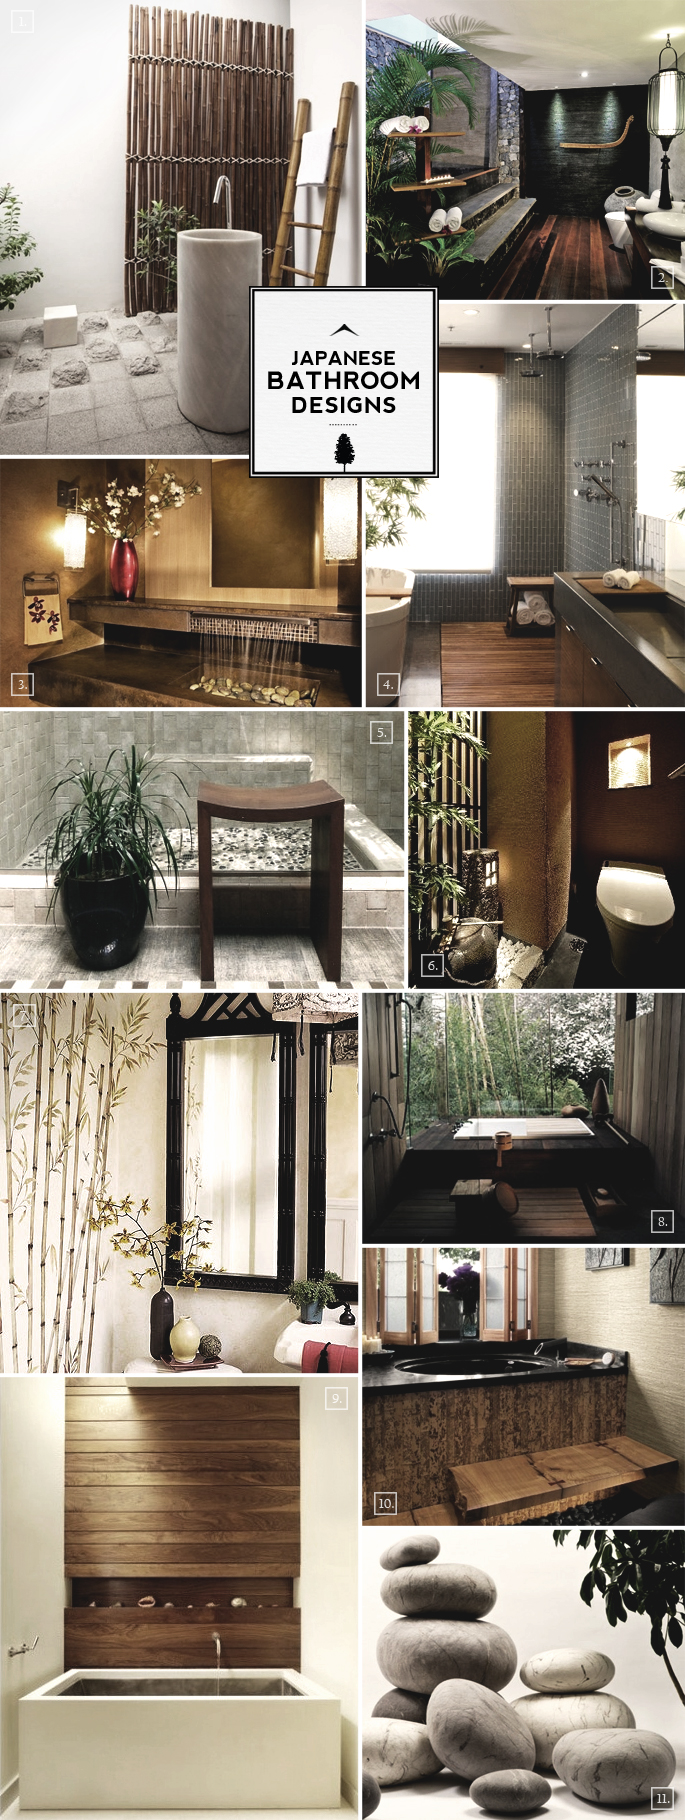 Zen style japanese bathroom design ideas home tree atlas Japanese bathroom interior design